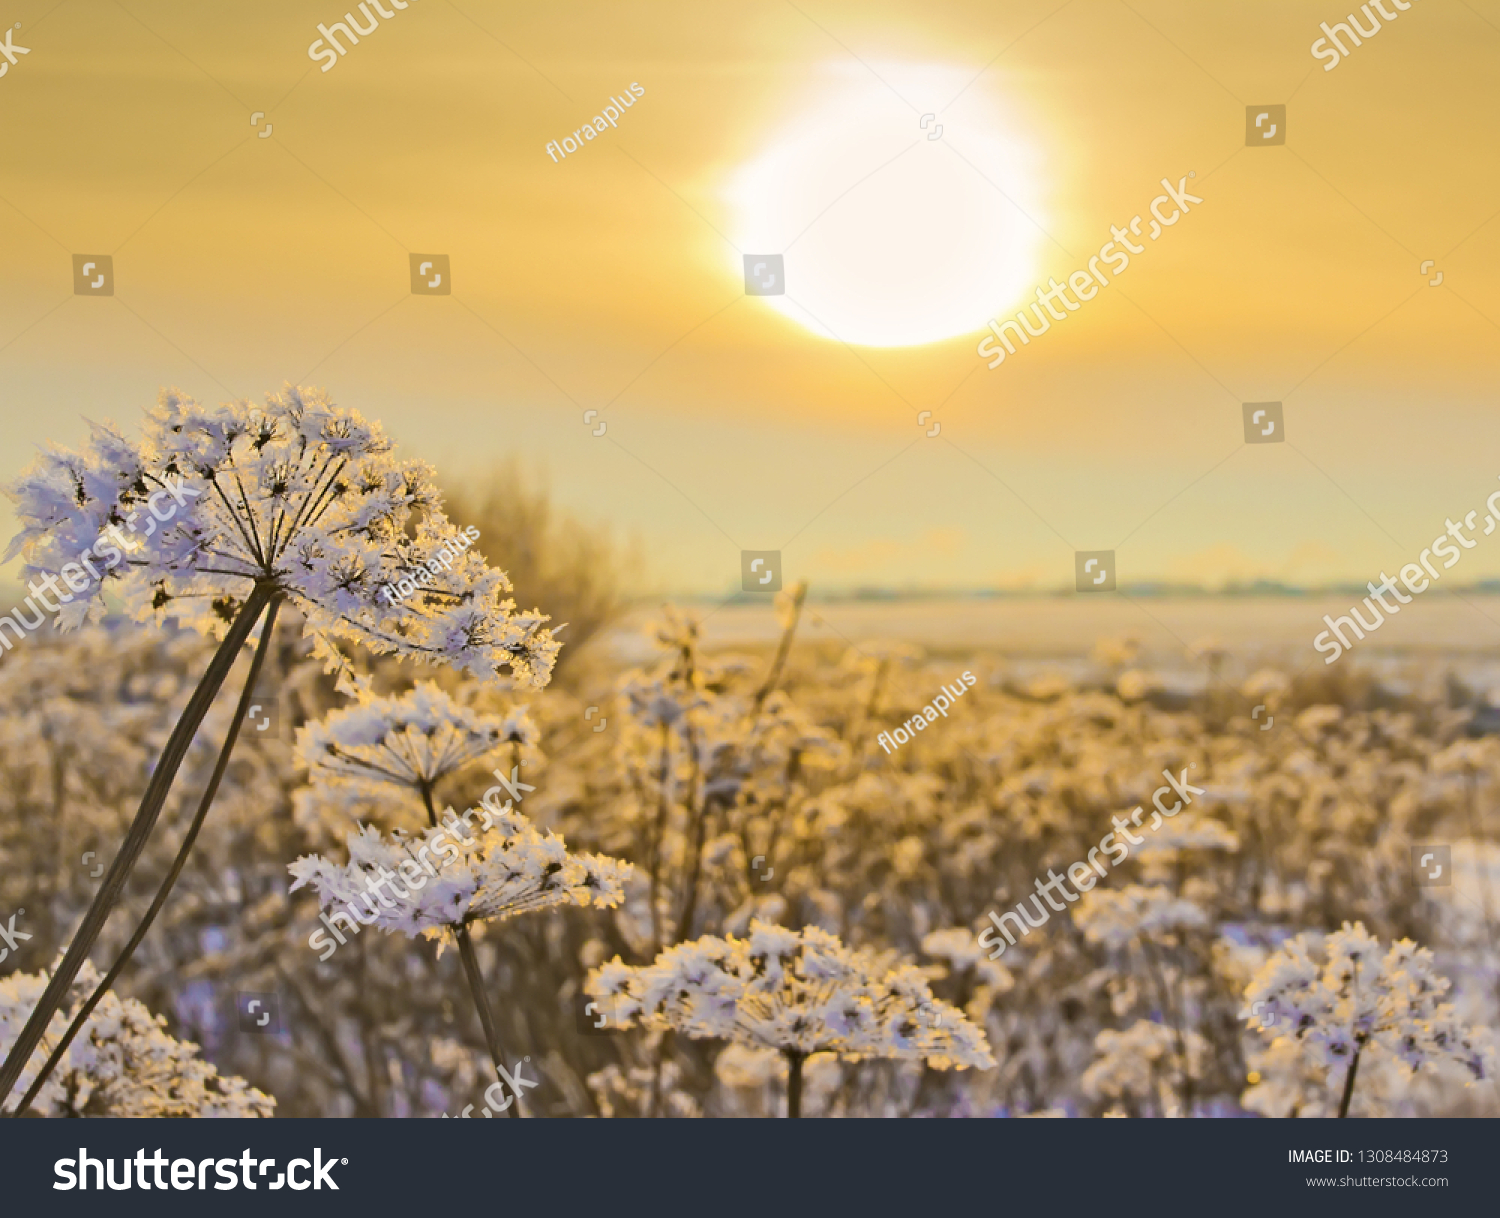 Winter sunset in the field. Dry inflorescences of a cow-parsnip stand covered with hoarfrost. The photo with the place for the text